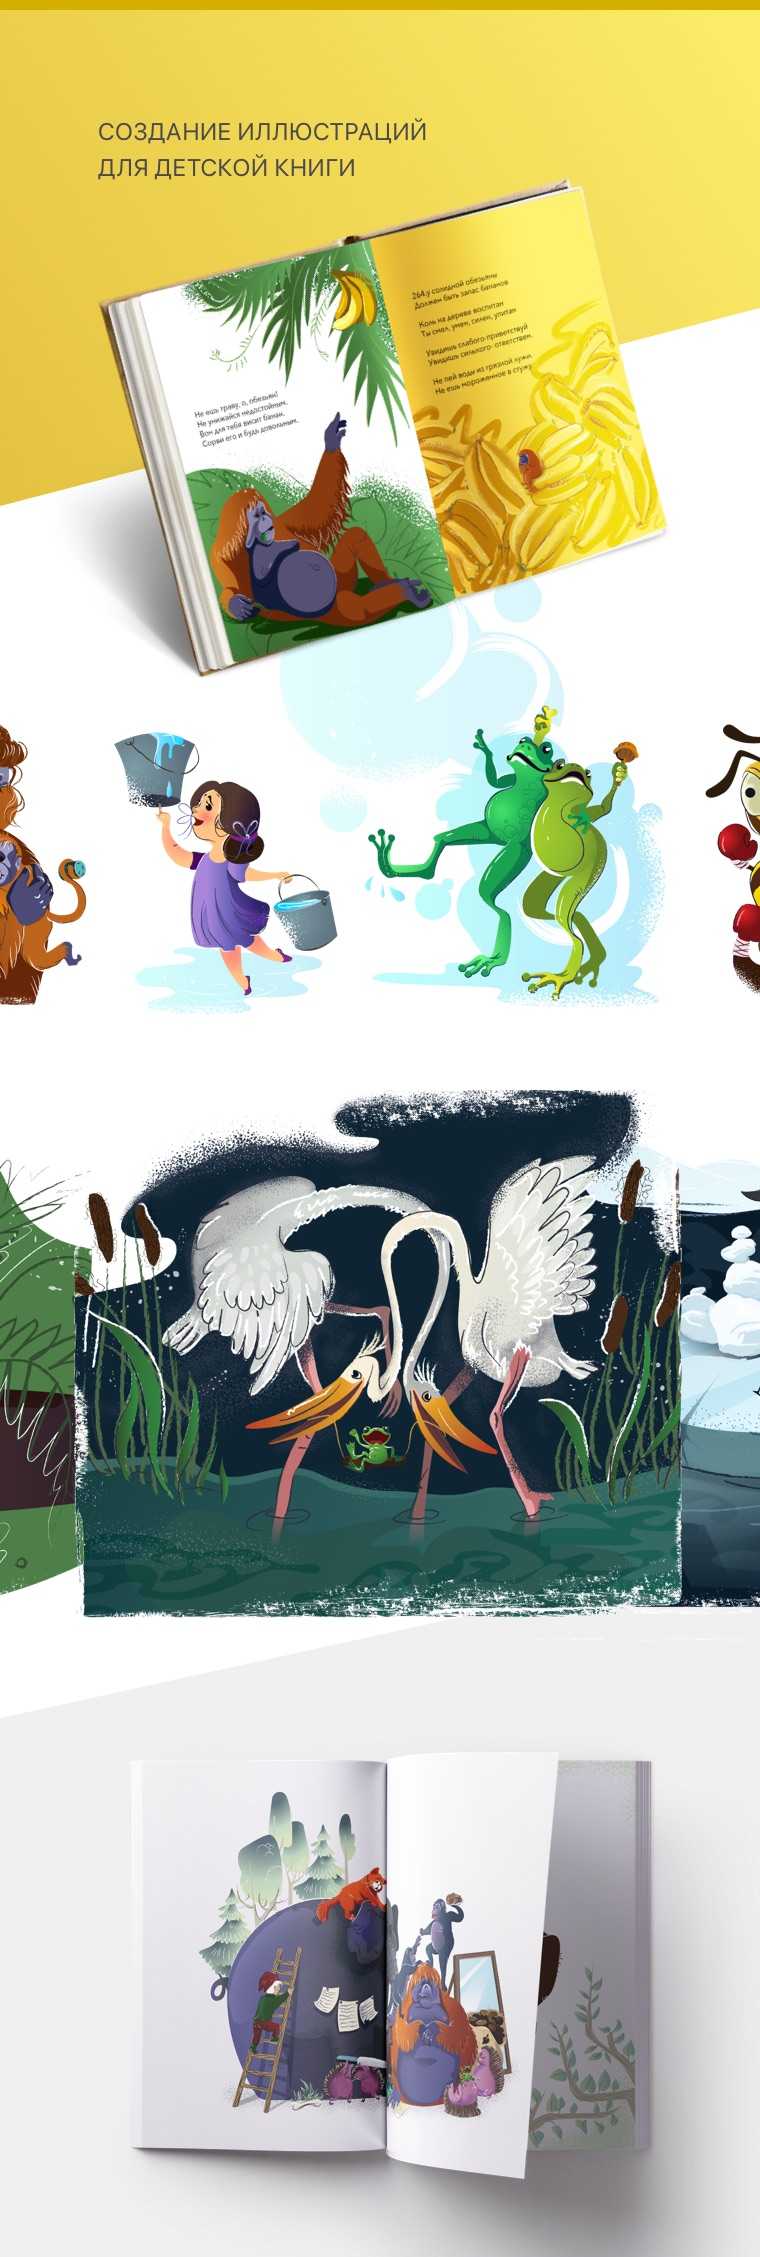 Эскиз проекта Illustrations for children's book